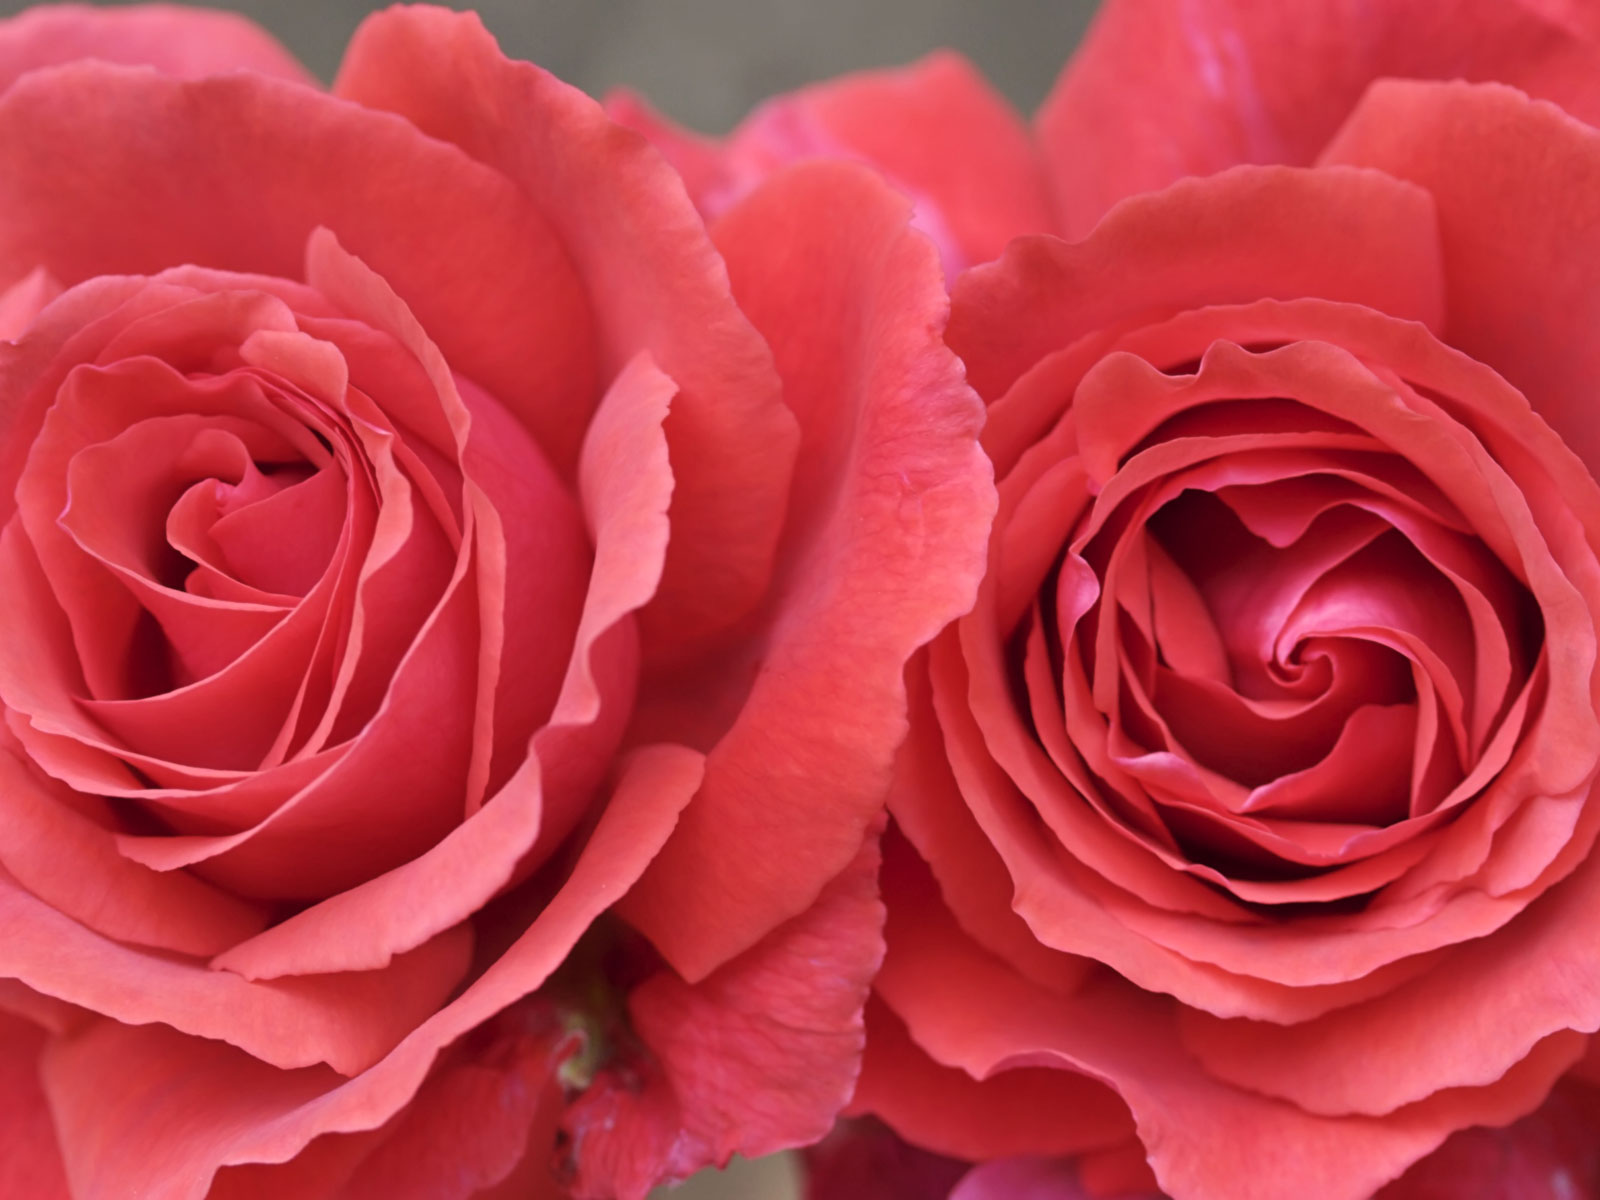 Wallpaper Collection For Your Computer and Mobile Phones: New 20 Best Colorful Rose Wallpaper ...